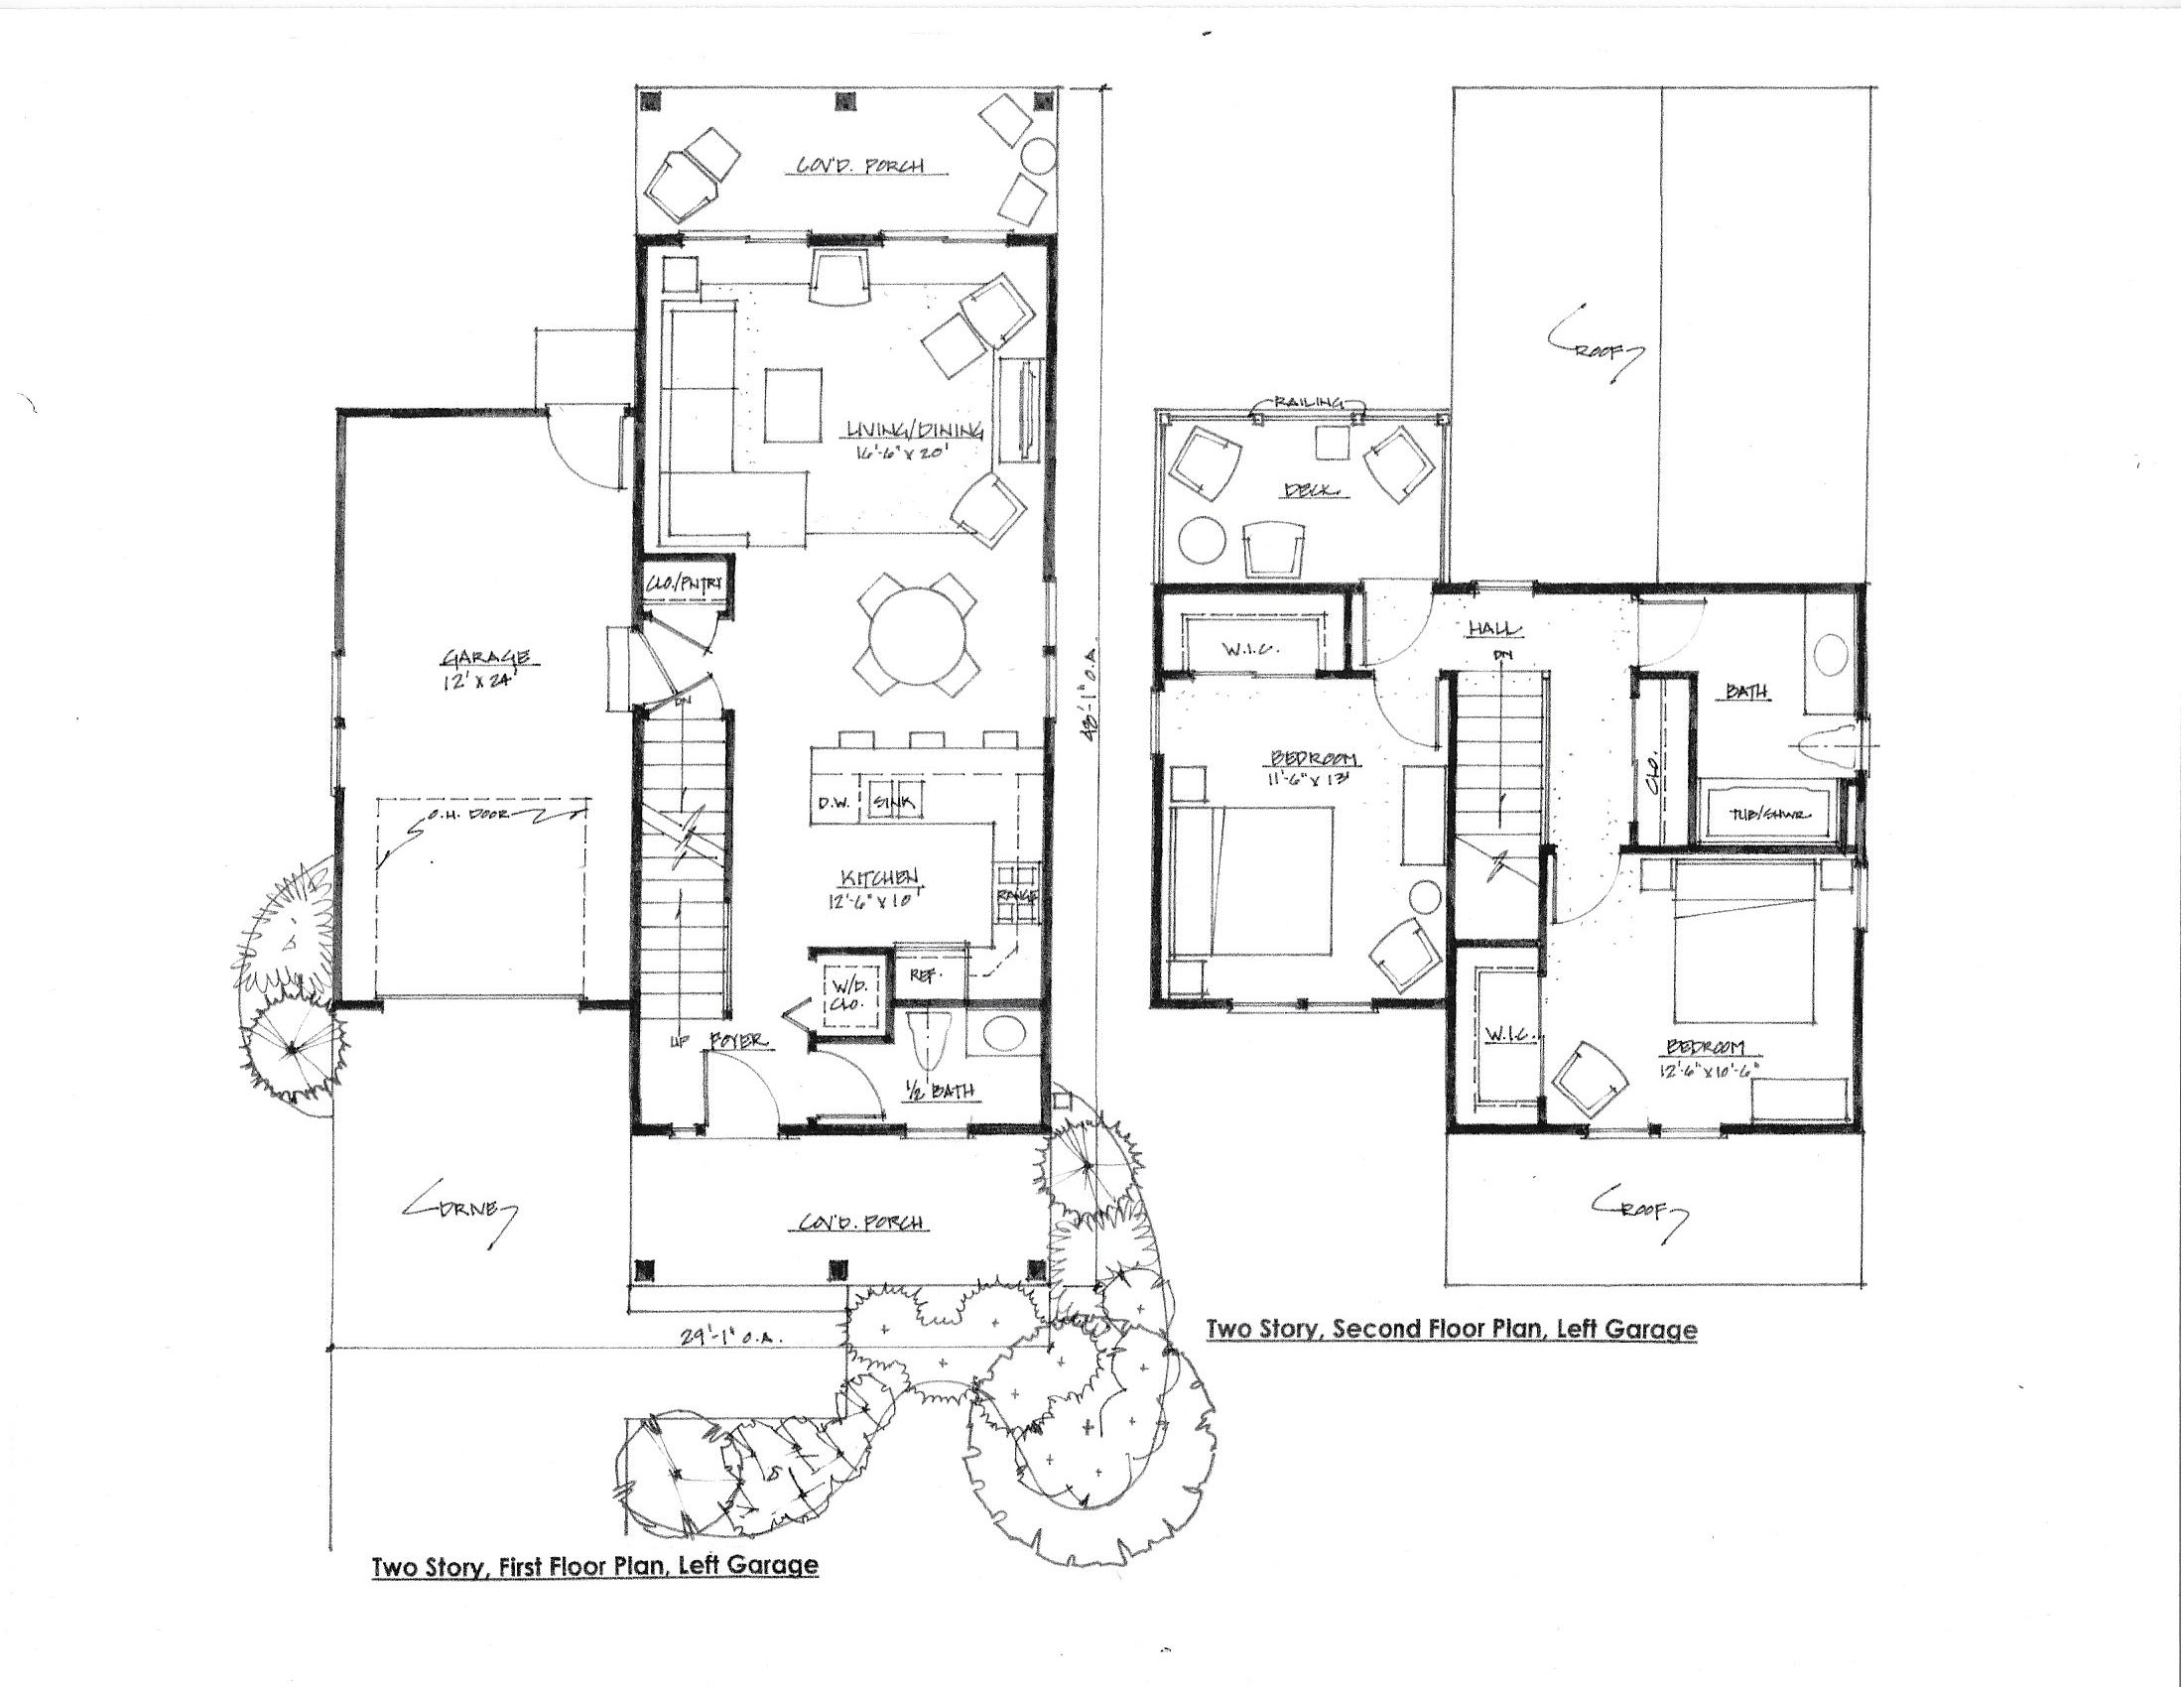 The Dover, Floor Plan, Left Garage